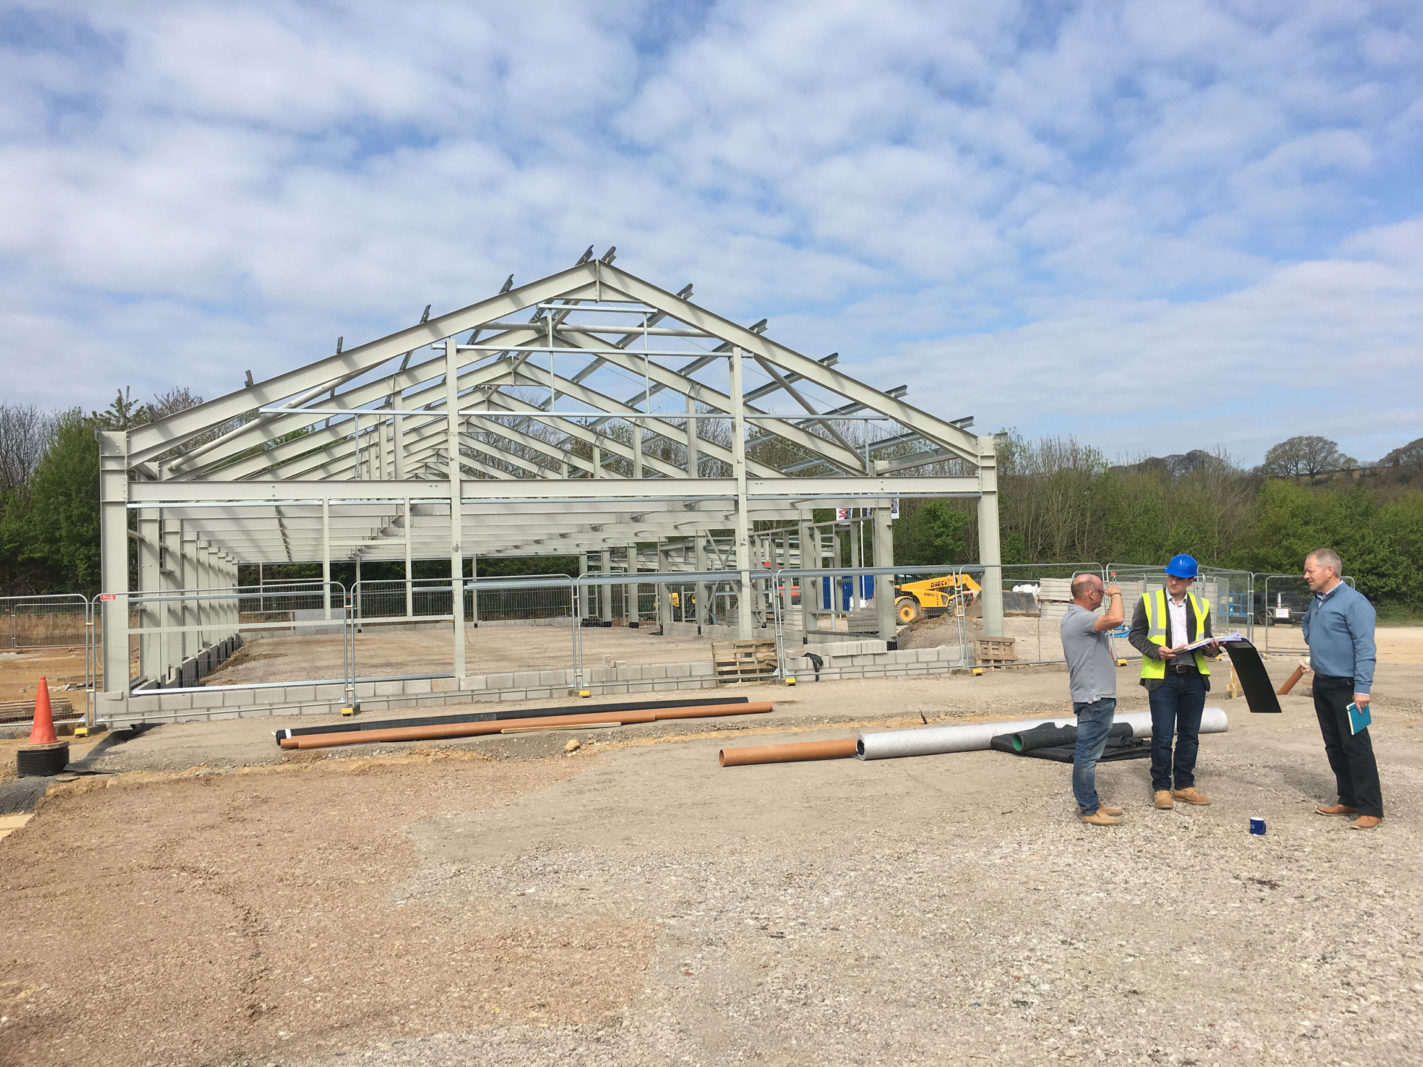 Endsleigh starts on site – Rud Sawers Architects, Devon